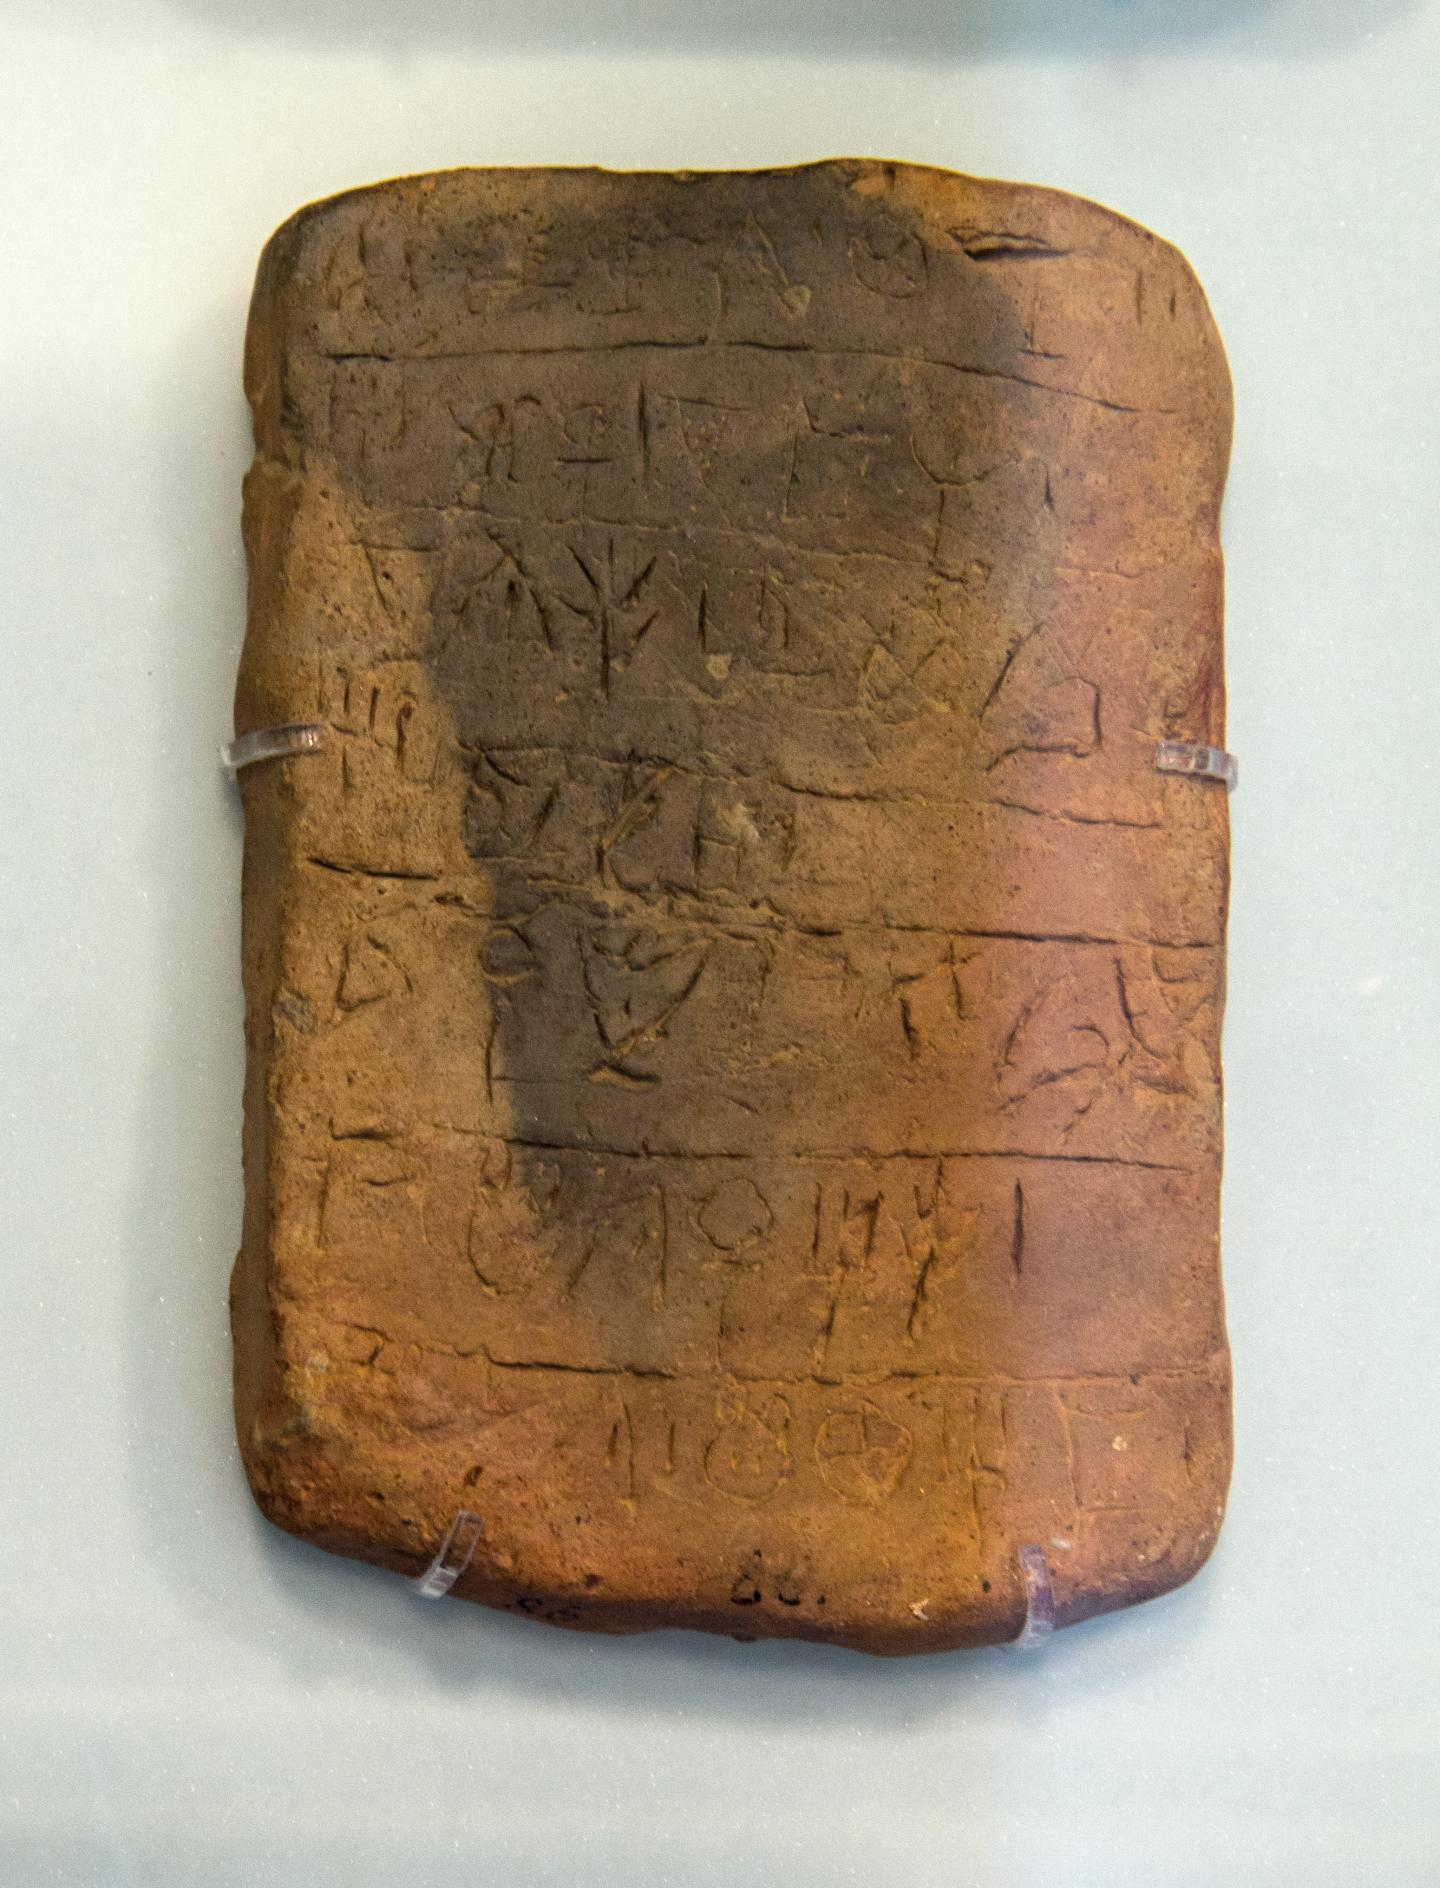 The Minoan Civilization Has Been Described as the First Literate Society In Europe, with Their Linea